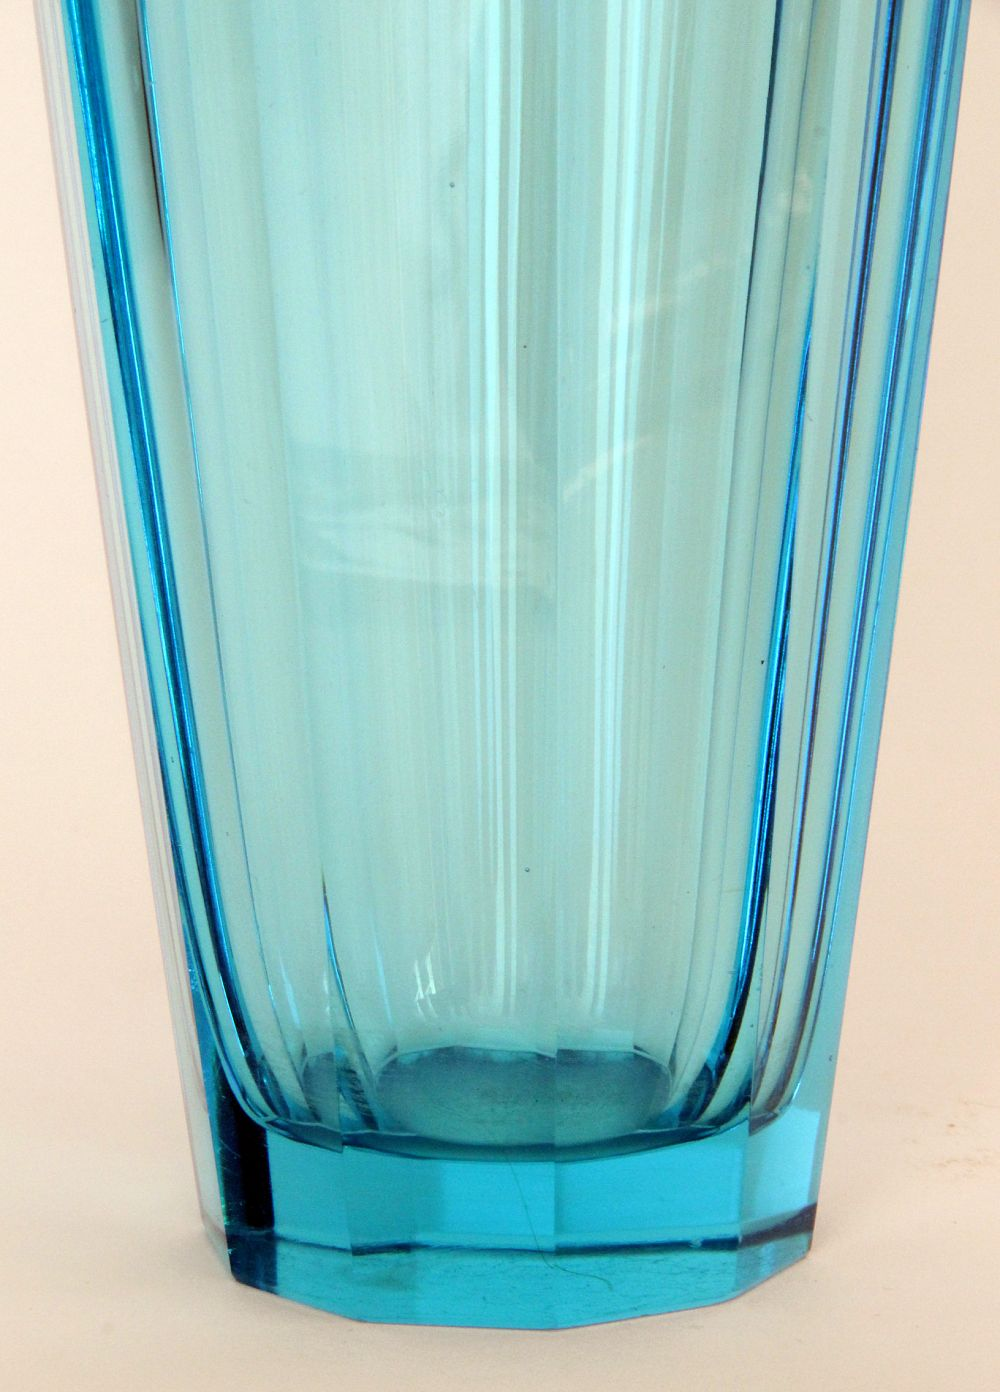 vintage width blue floral height glass vase cut czech fit bohemian aspect chairish product